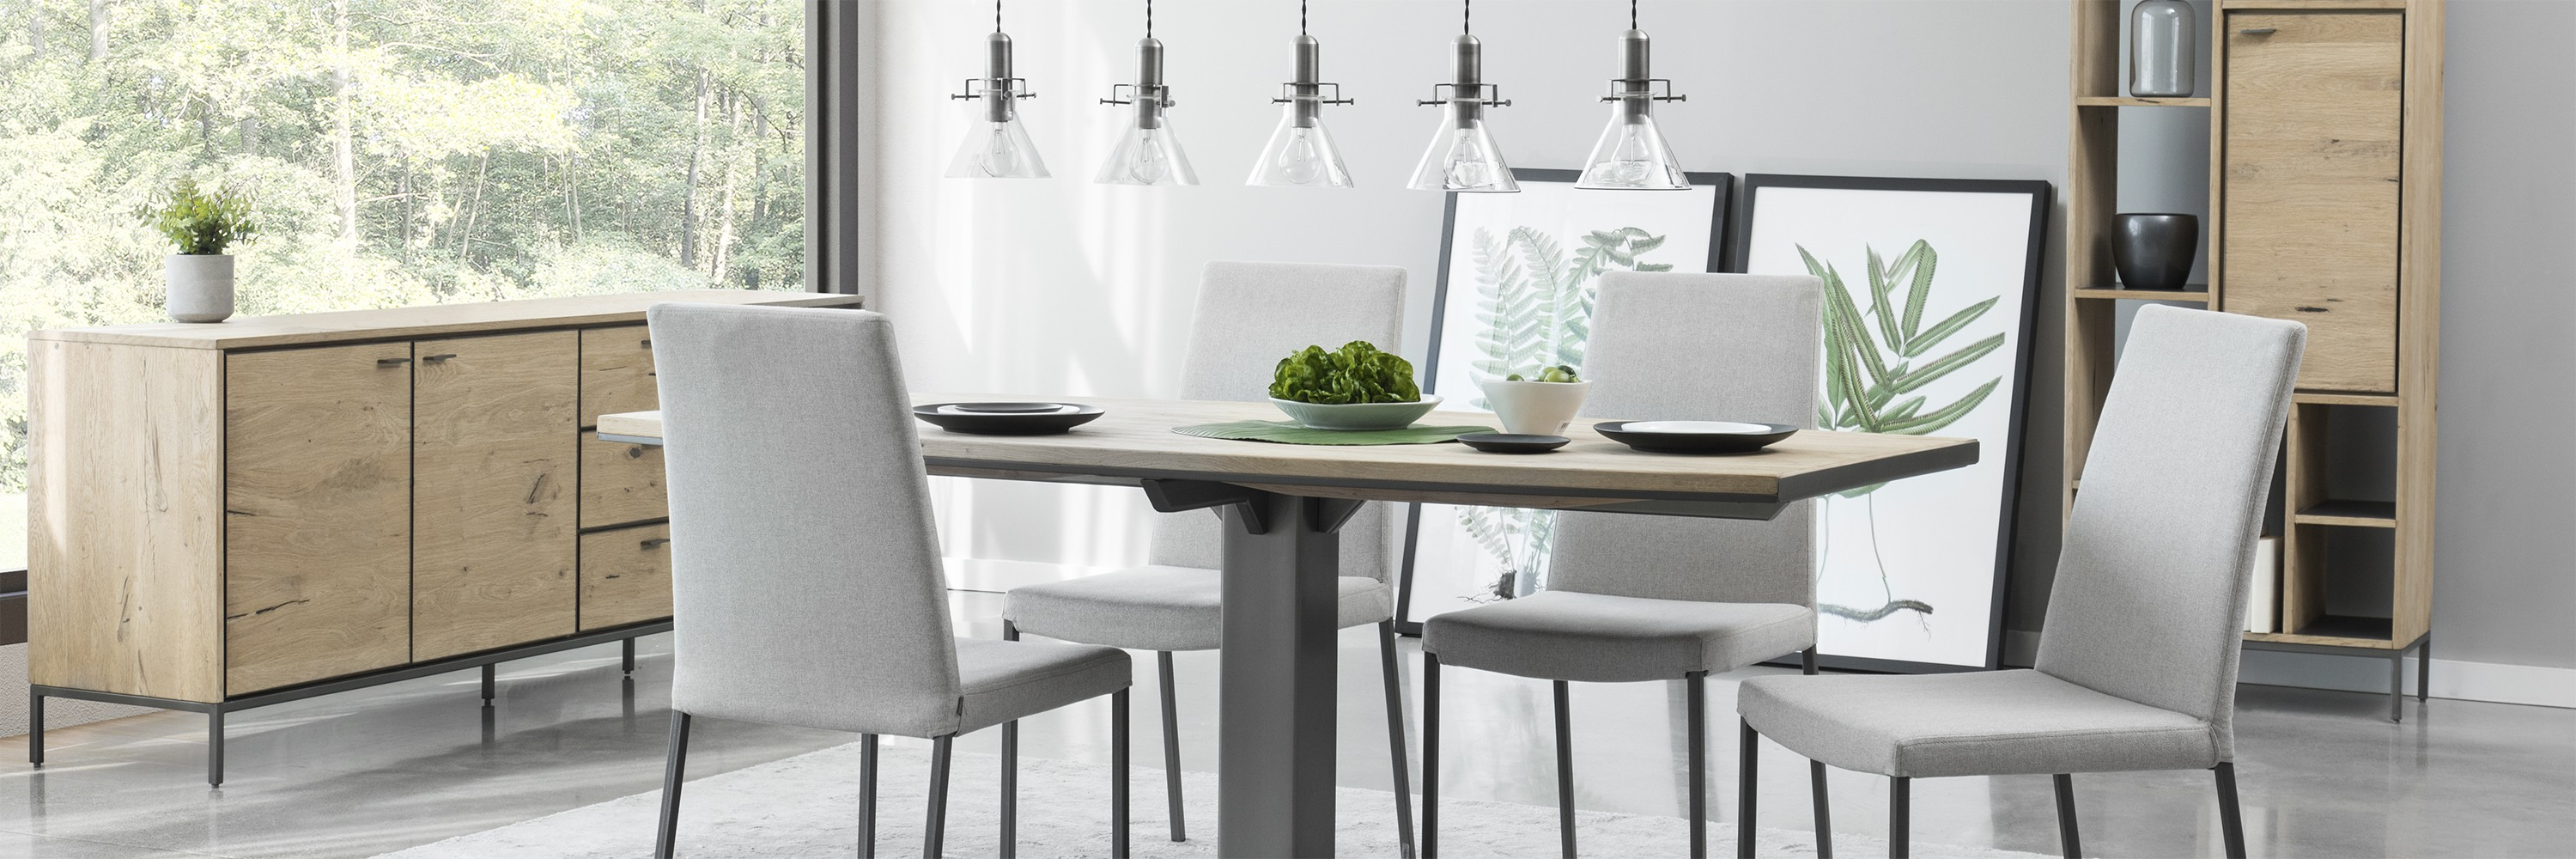 Wish Meuble Dining Room Furniture Tables Chairs Decor Maison Corbeil